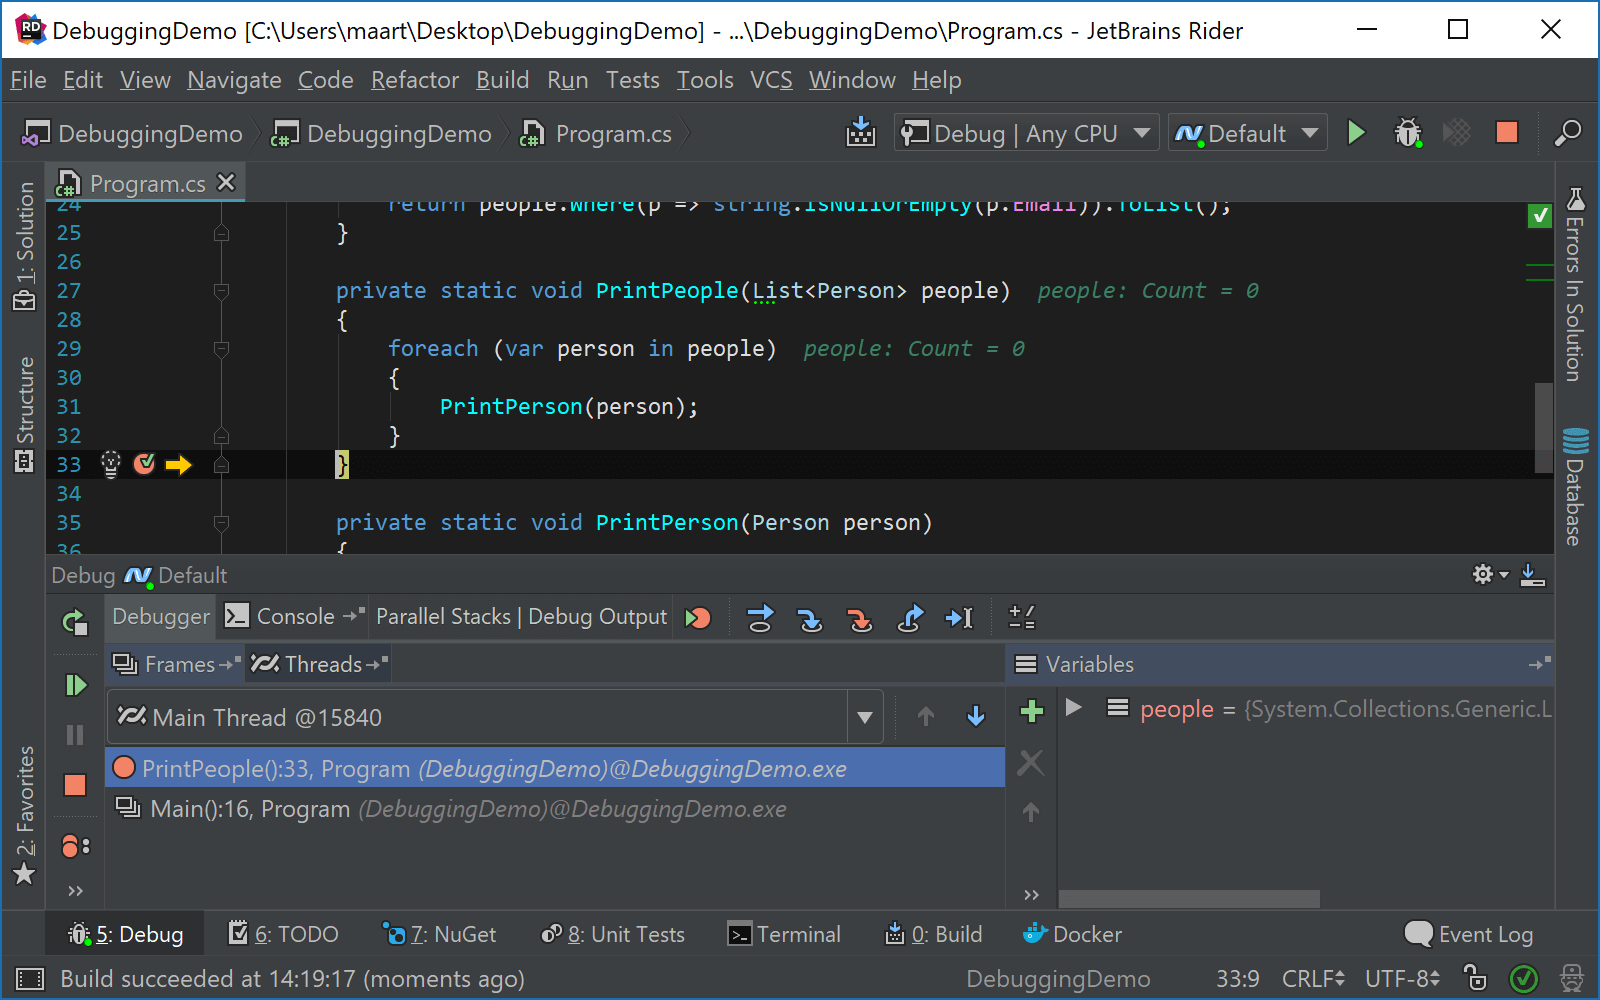 Drag Rider debugger execution pointer to set next statement